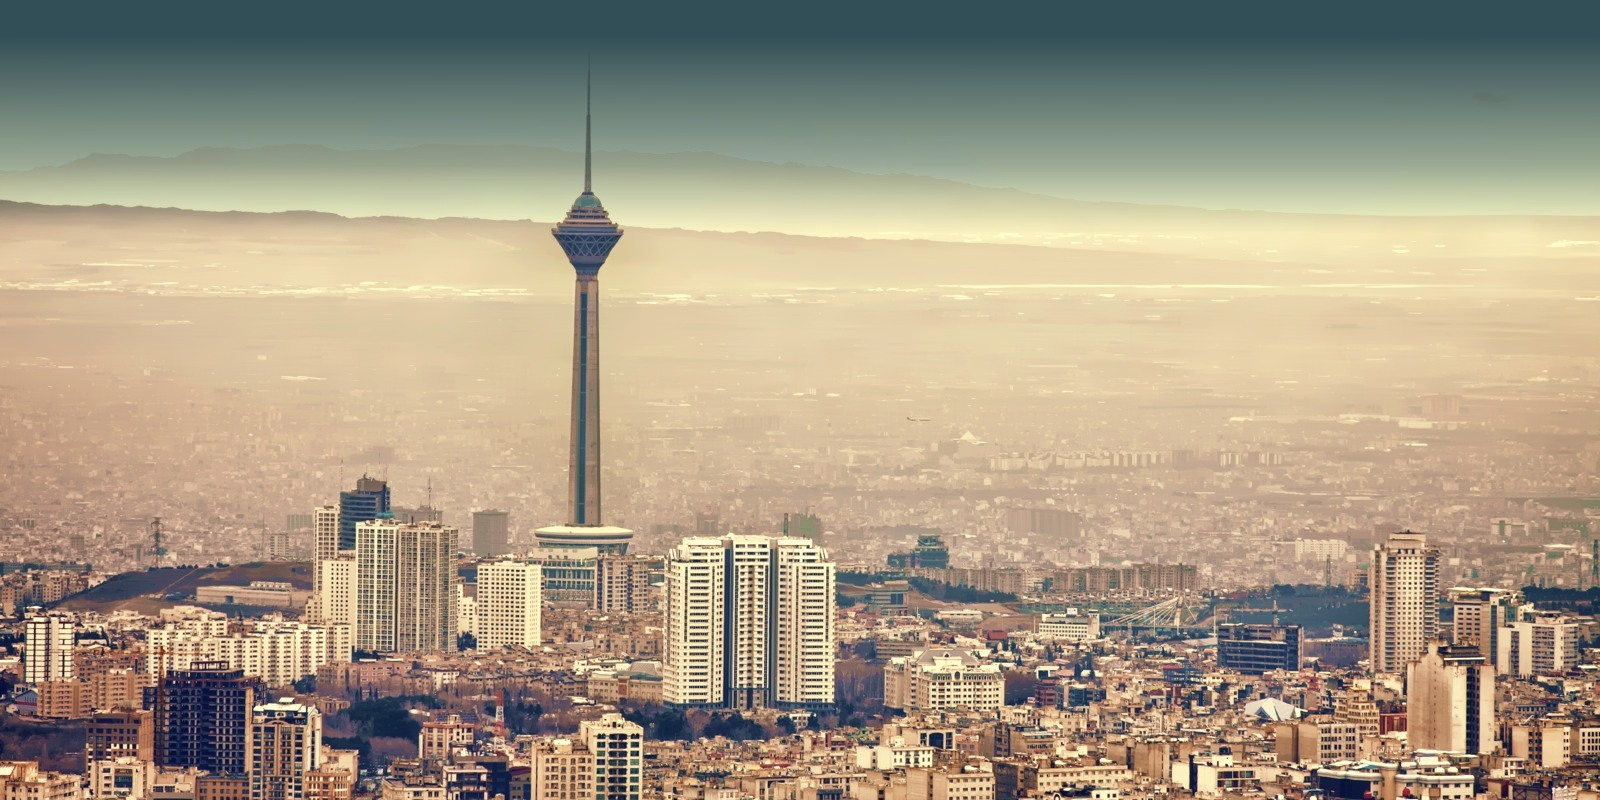 All from Italy, Teheran